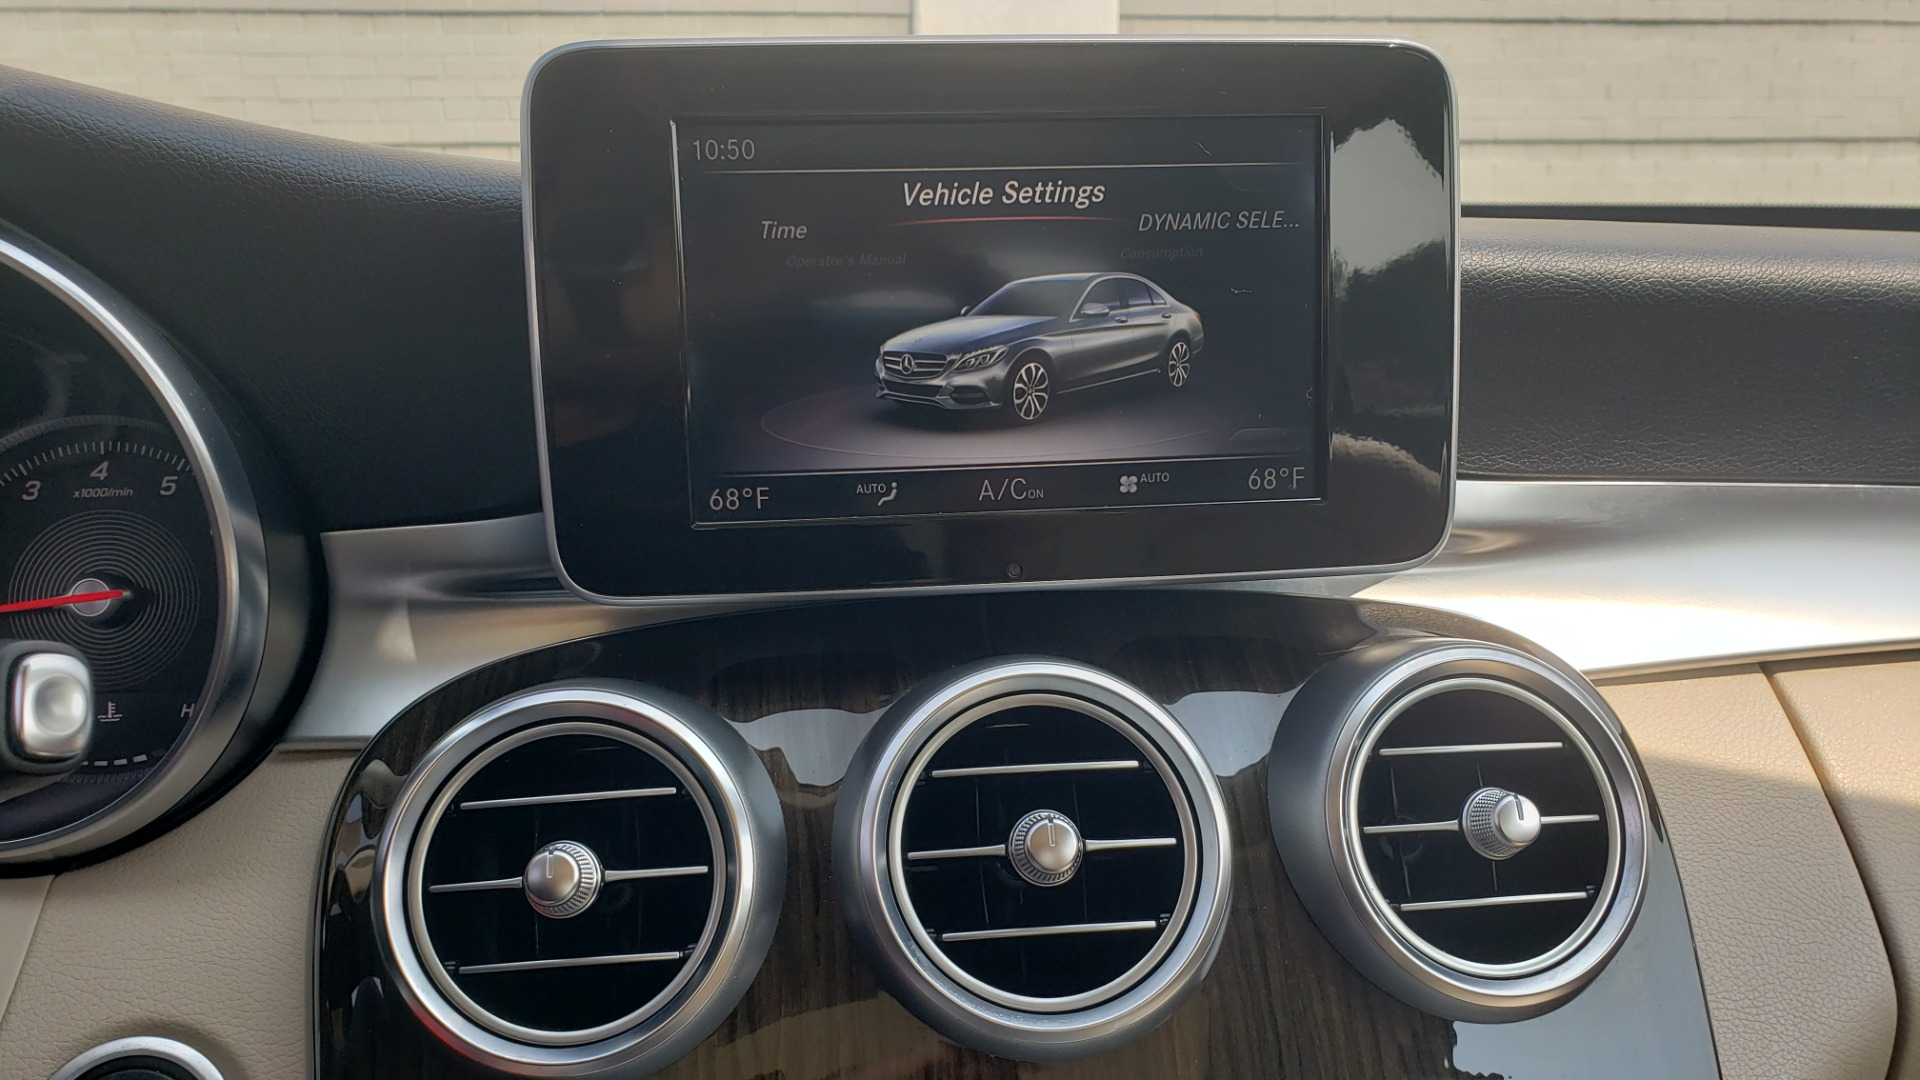 Used 2018 Mercedes-Benz C-CLASS C 300 PREMIUM / KEYLESS-GO / APPLE / PANO-ROOF / REARVIEW for sale $28,295 at Formula Imports in Charlotte NC 28227 44